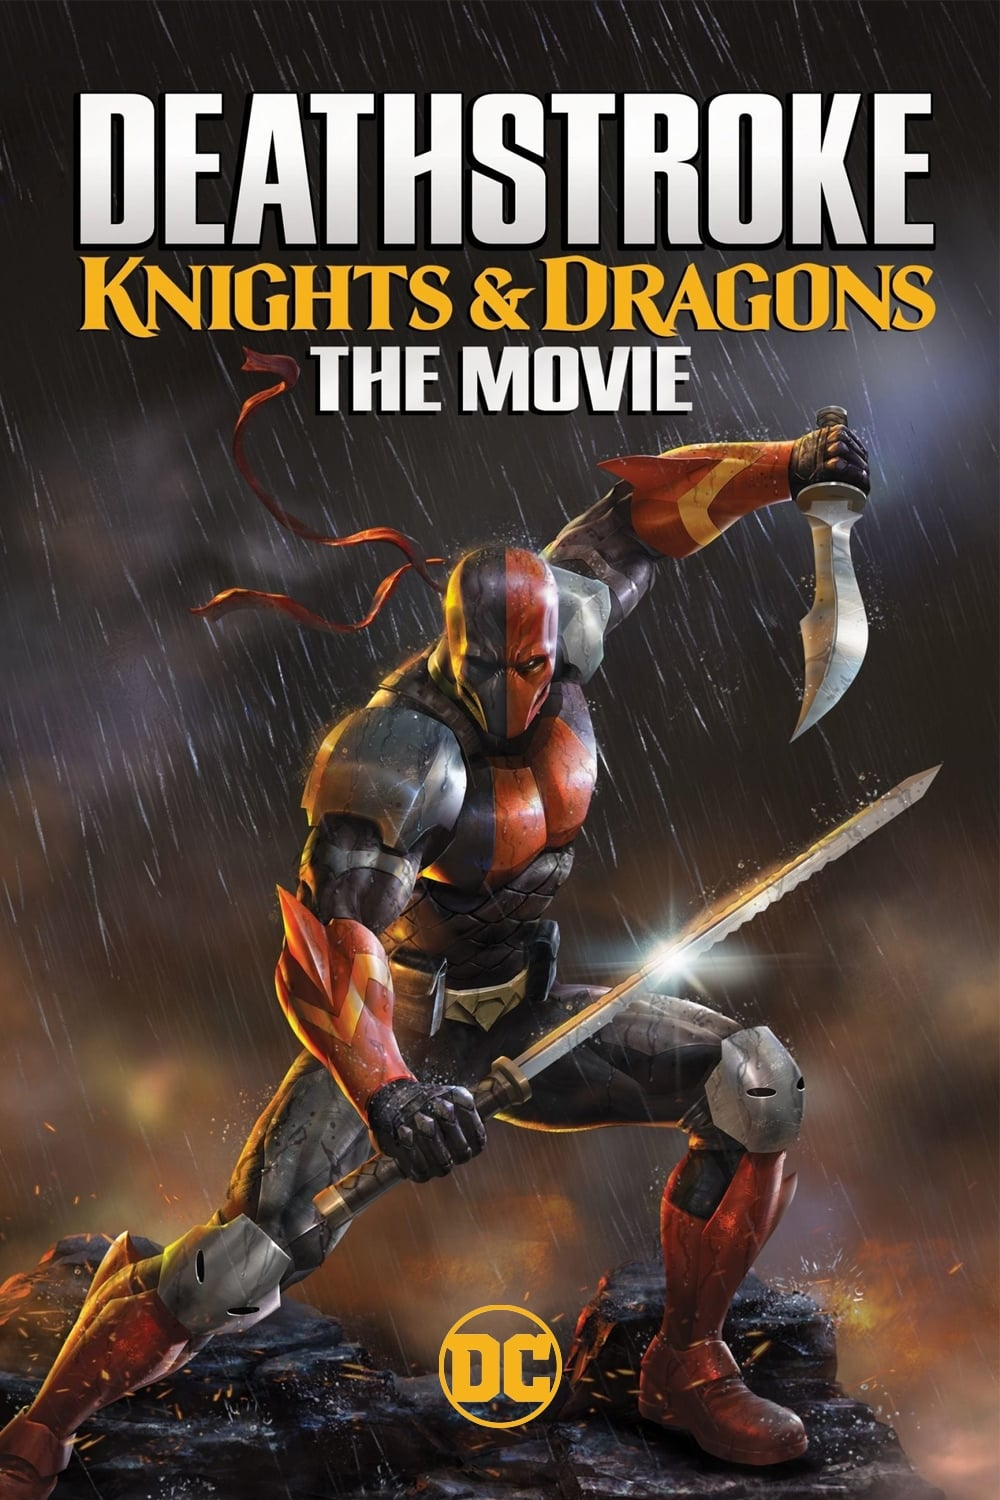 voir film Deathstroke: Knights & Dragons - The Movie streaming